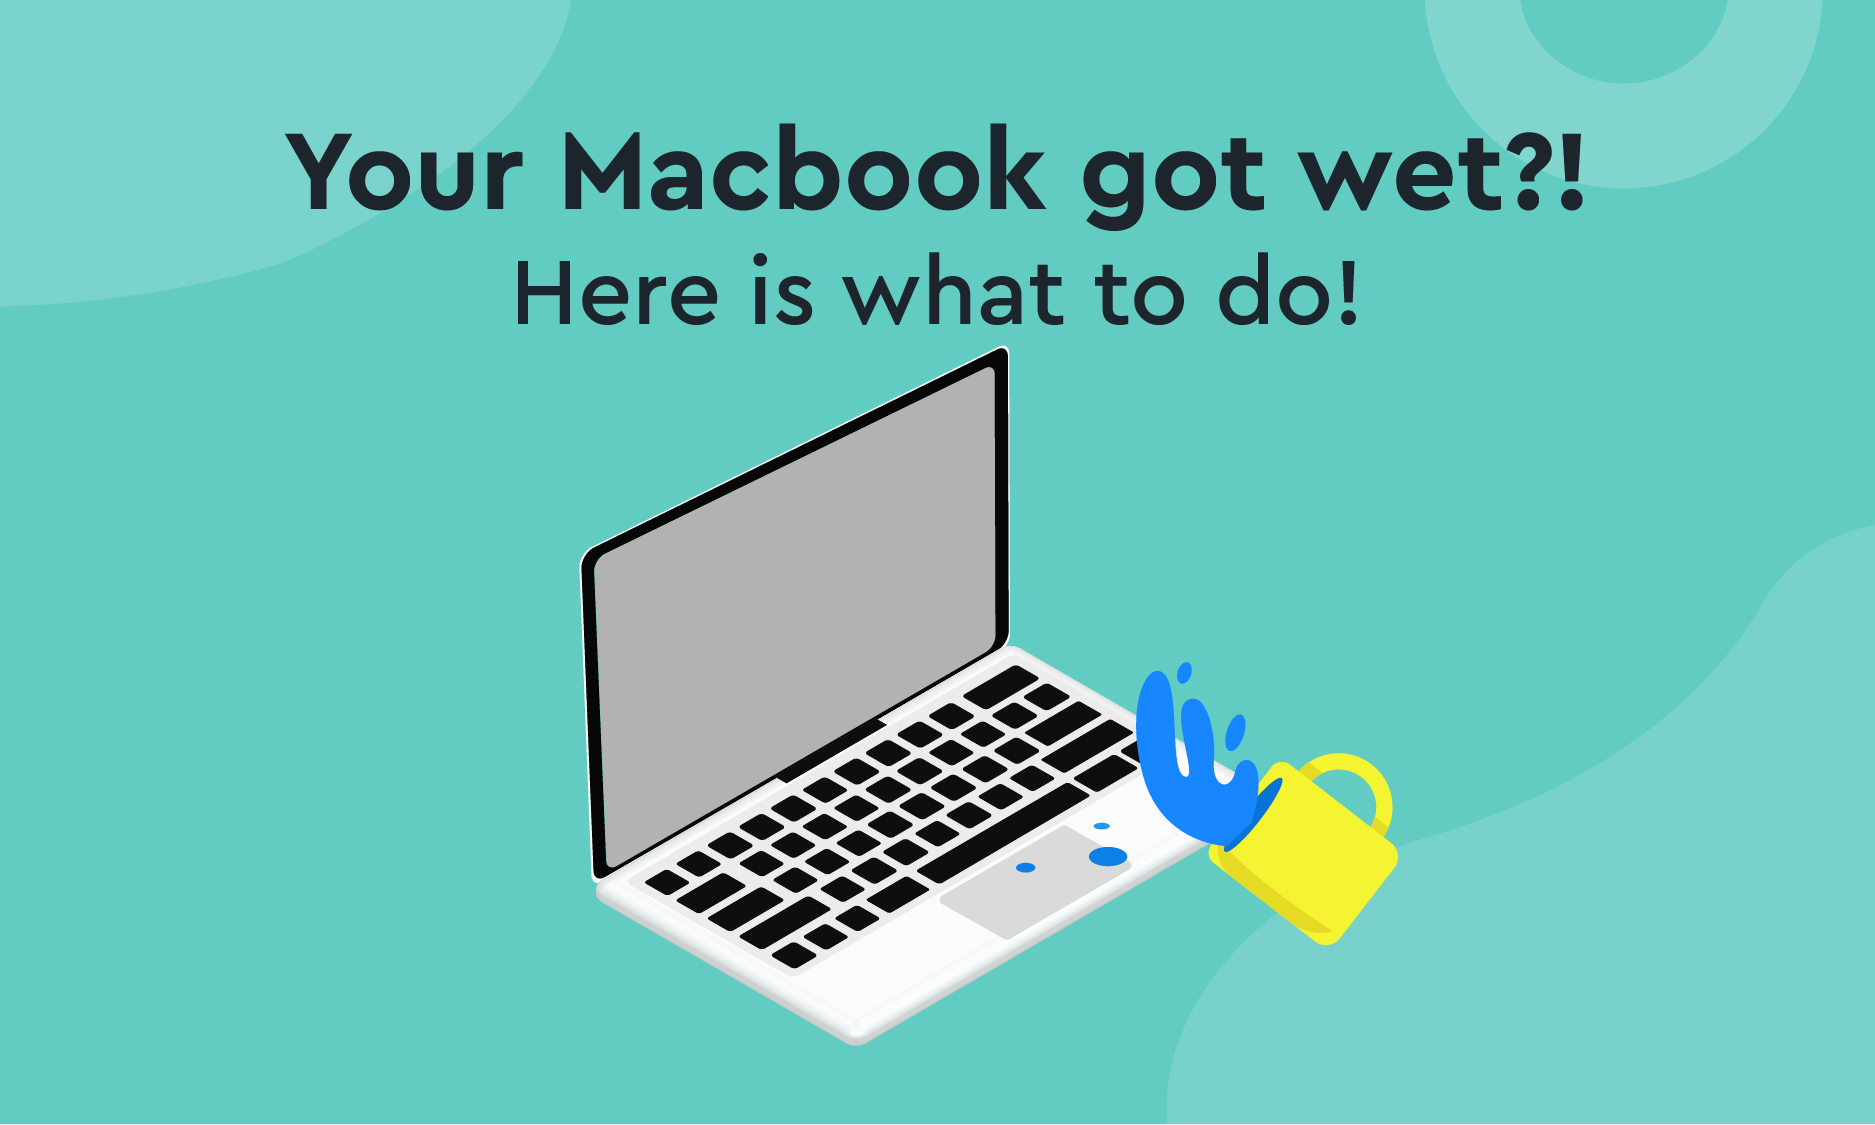 Your Macbook got wet?! Here is what to do